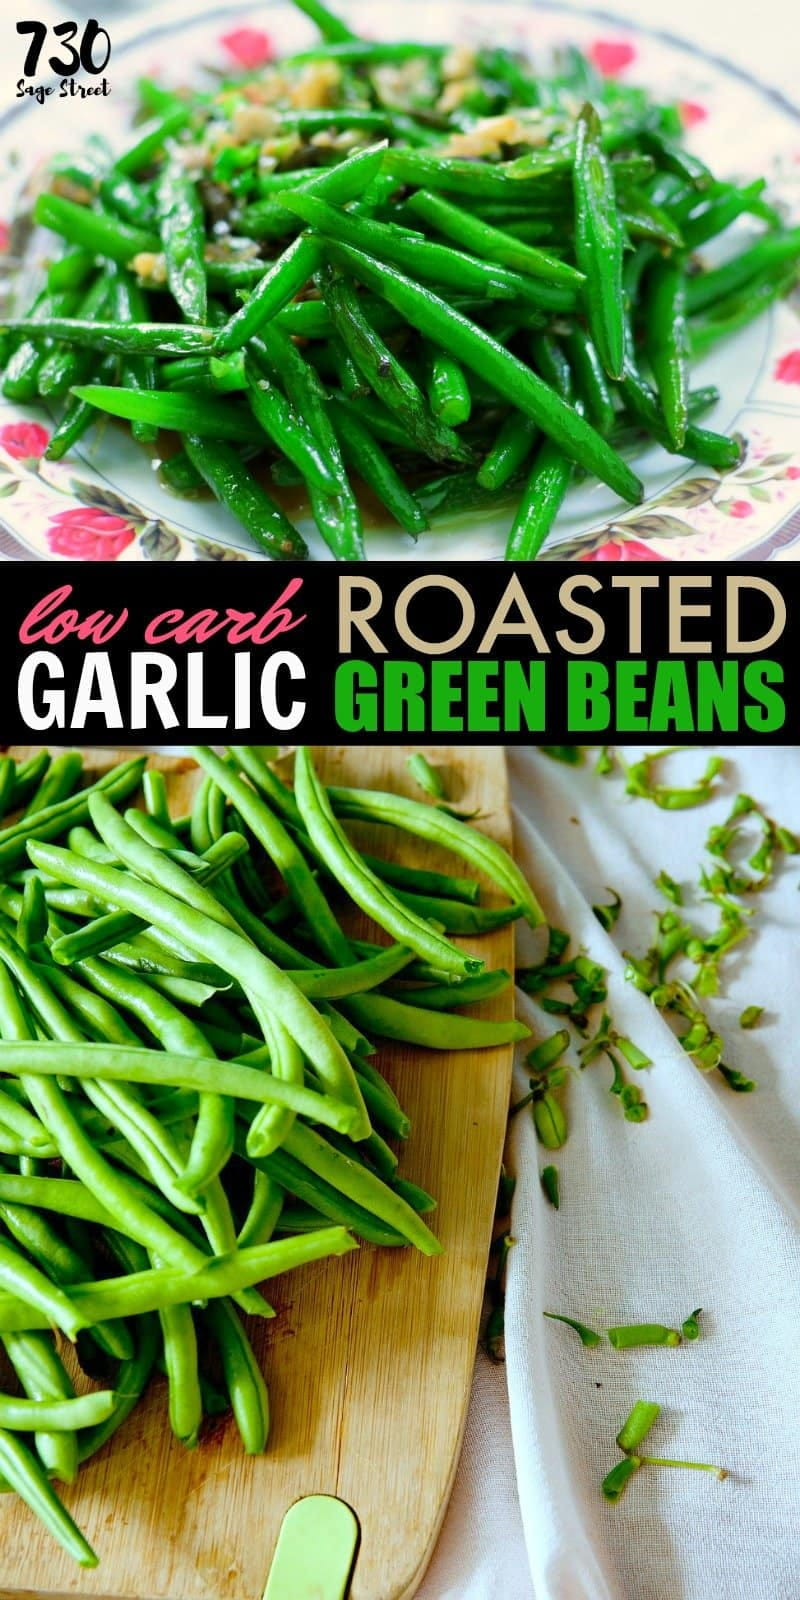 low carb garlic green beans photo collage